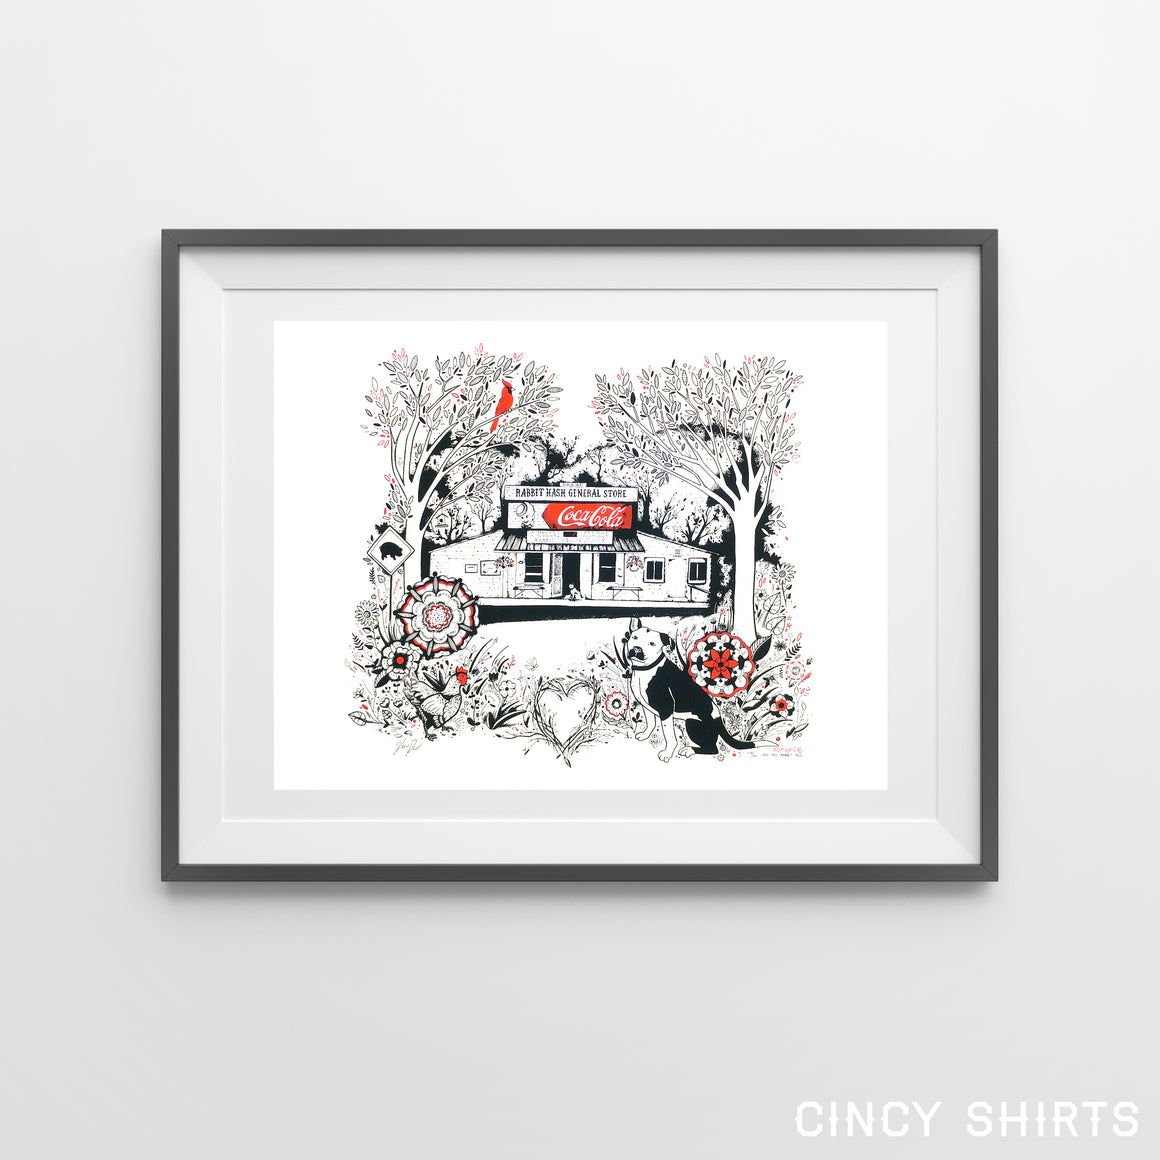 Rabbit Hash General Store - Art Print by Robyn Roth - Cincy Shirts